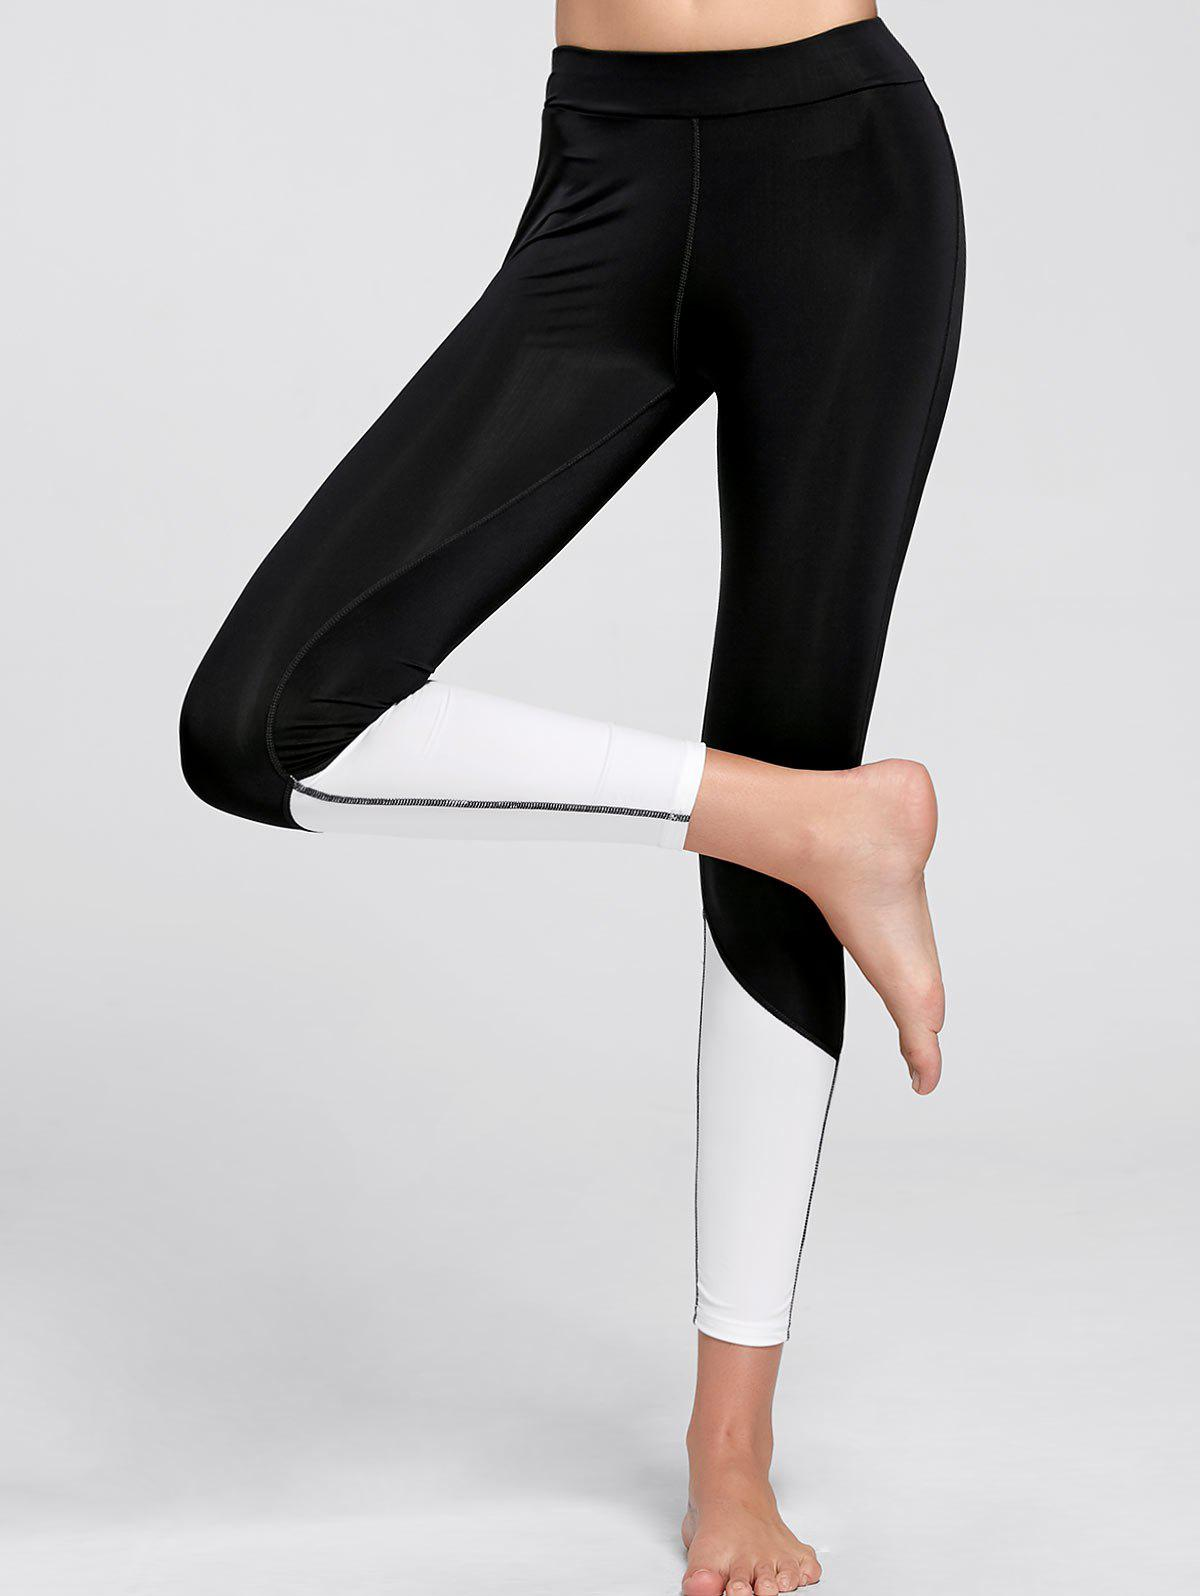 Color Block  Ankle Compression Leggings - BLACK M